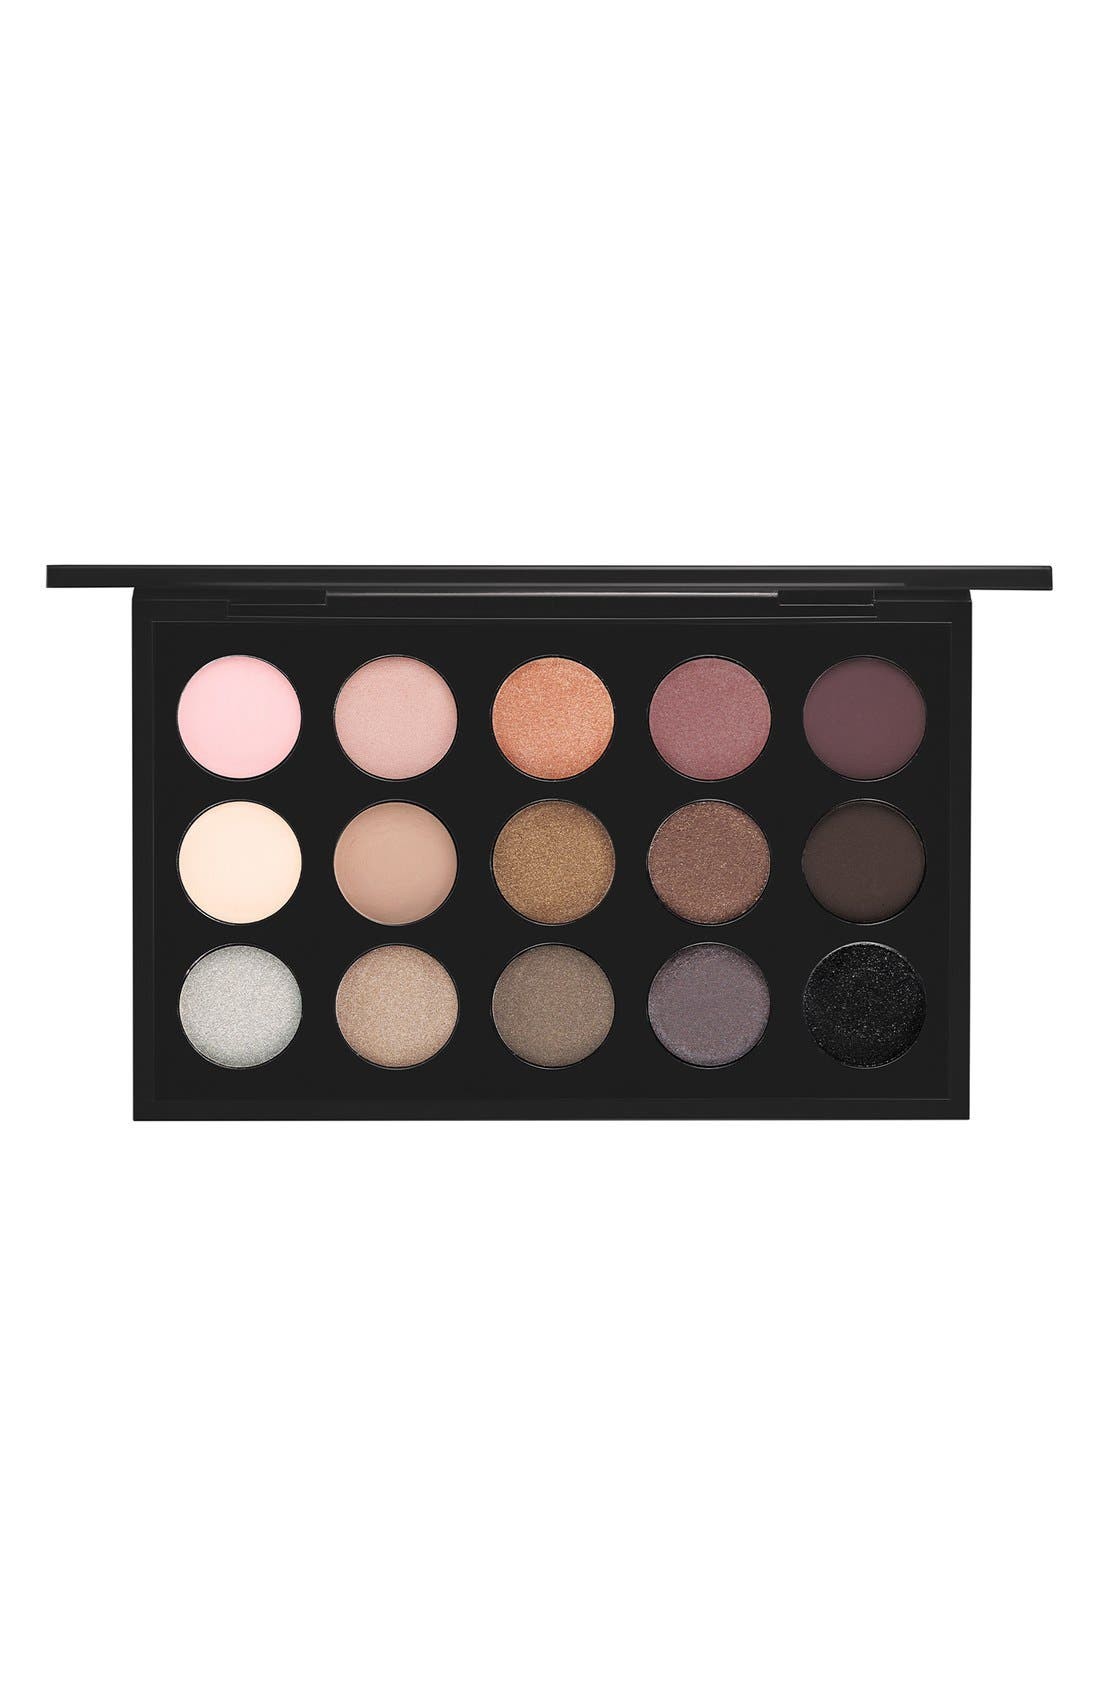 MAC Cool Neutral Times 15 Eyeshadow Palette,                         Main,                         color, Cool Neutral